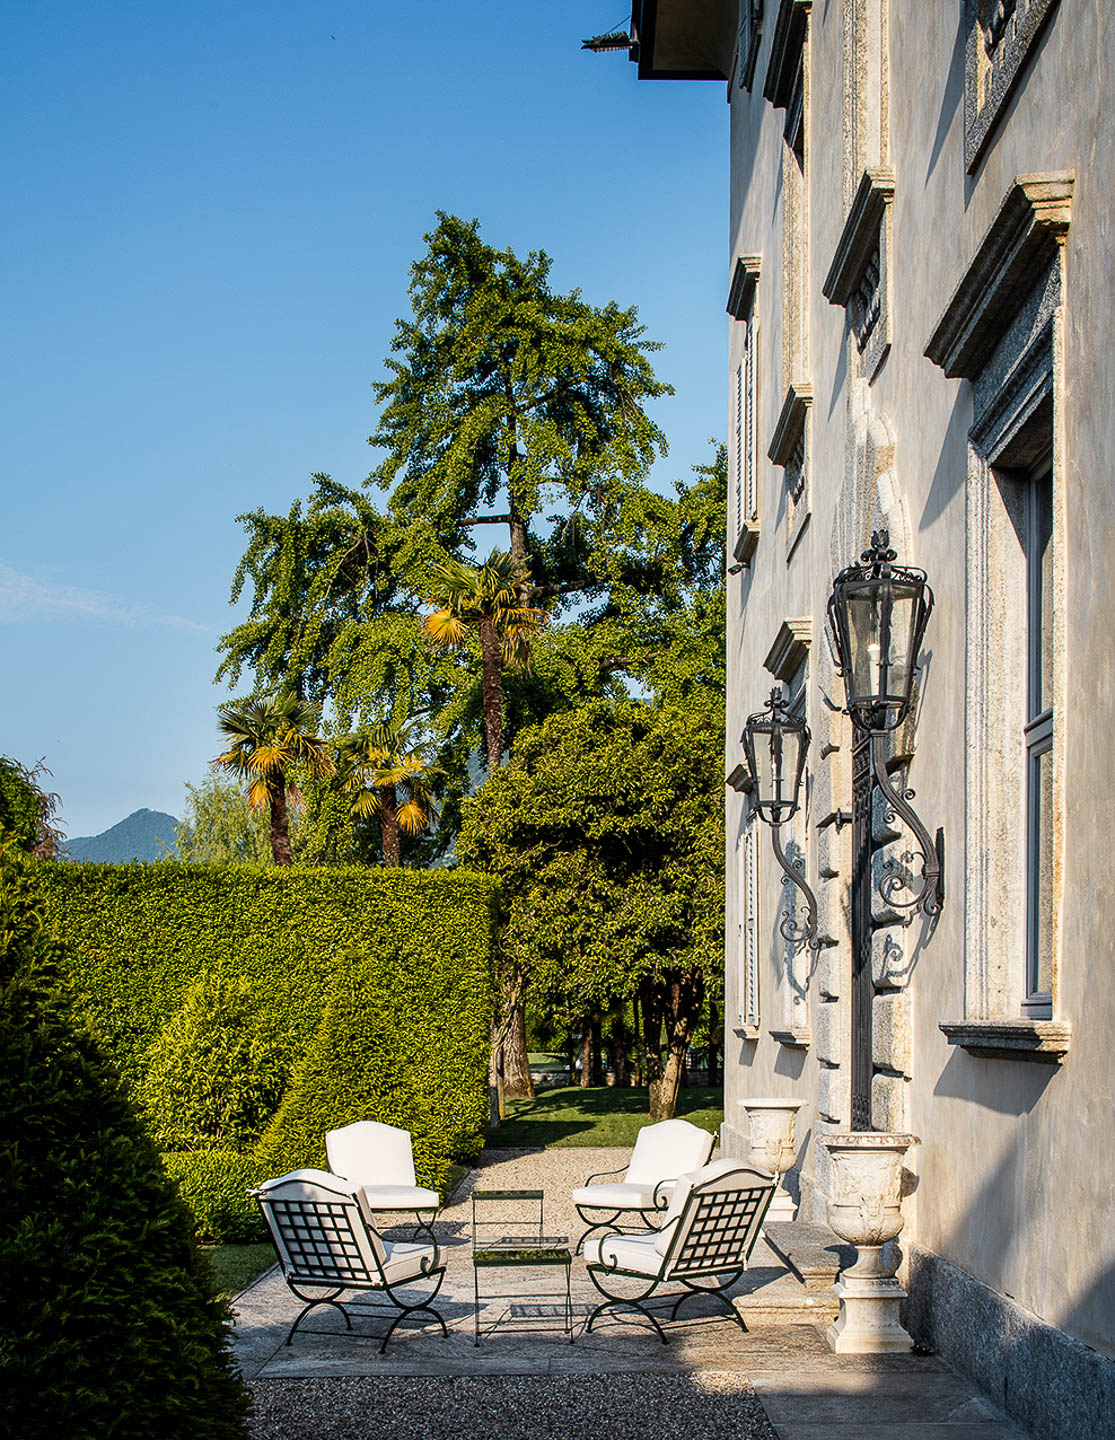 Villa Blabiano luxury property Lakr Como Italy available exclusive rent rental accommodation travel destination intimate wedding ceremony area in front of 4 floor palazzo